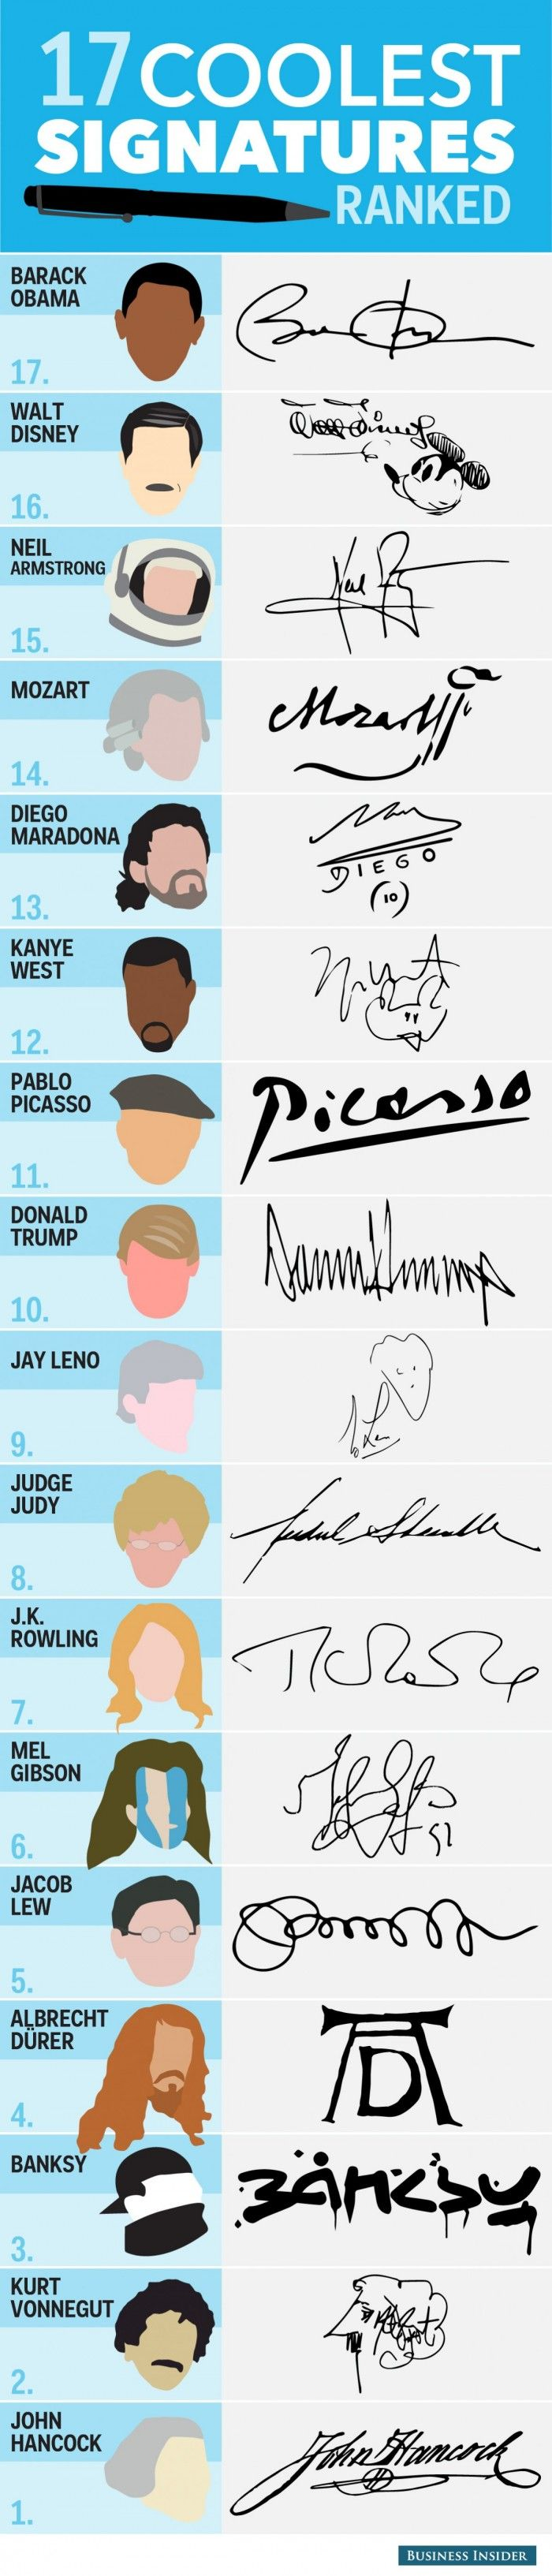 Not sure about ranking them, but it's cool to see the signatures!